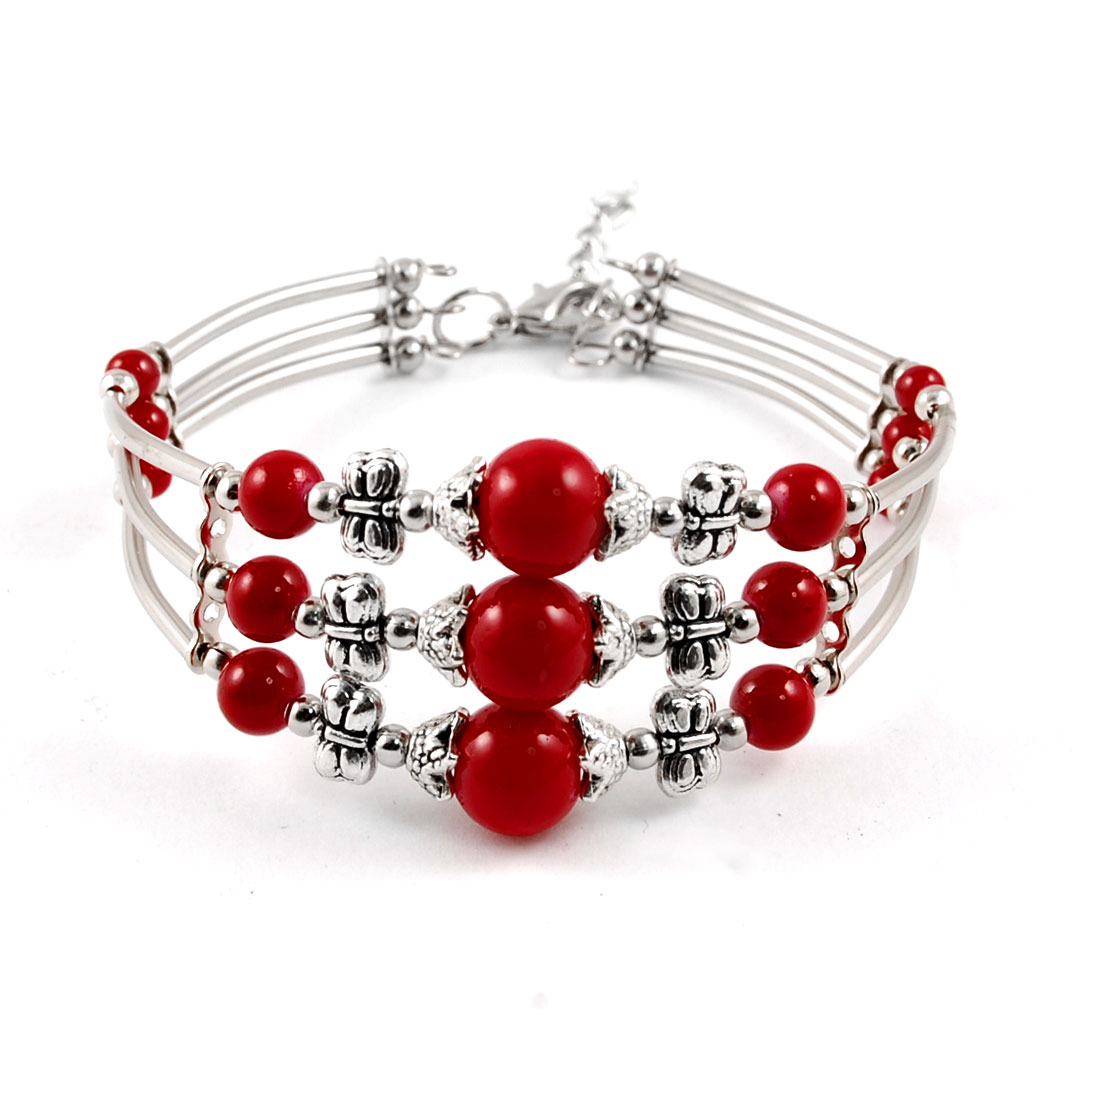 Metal Butterfly Decor Multi Layer Wrist Bracelet Bangle Silver Tone Red